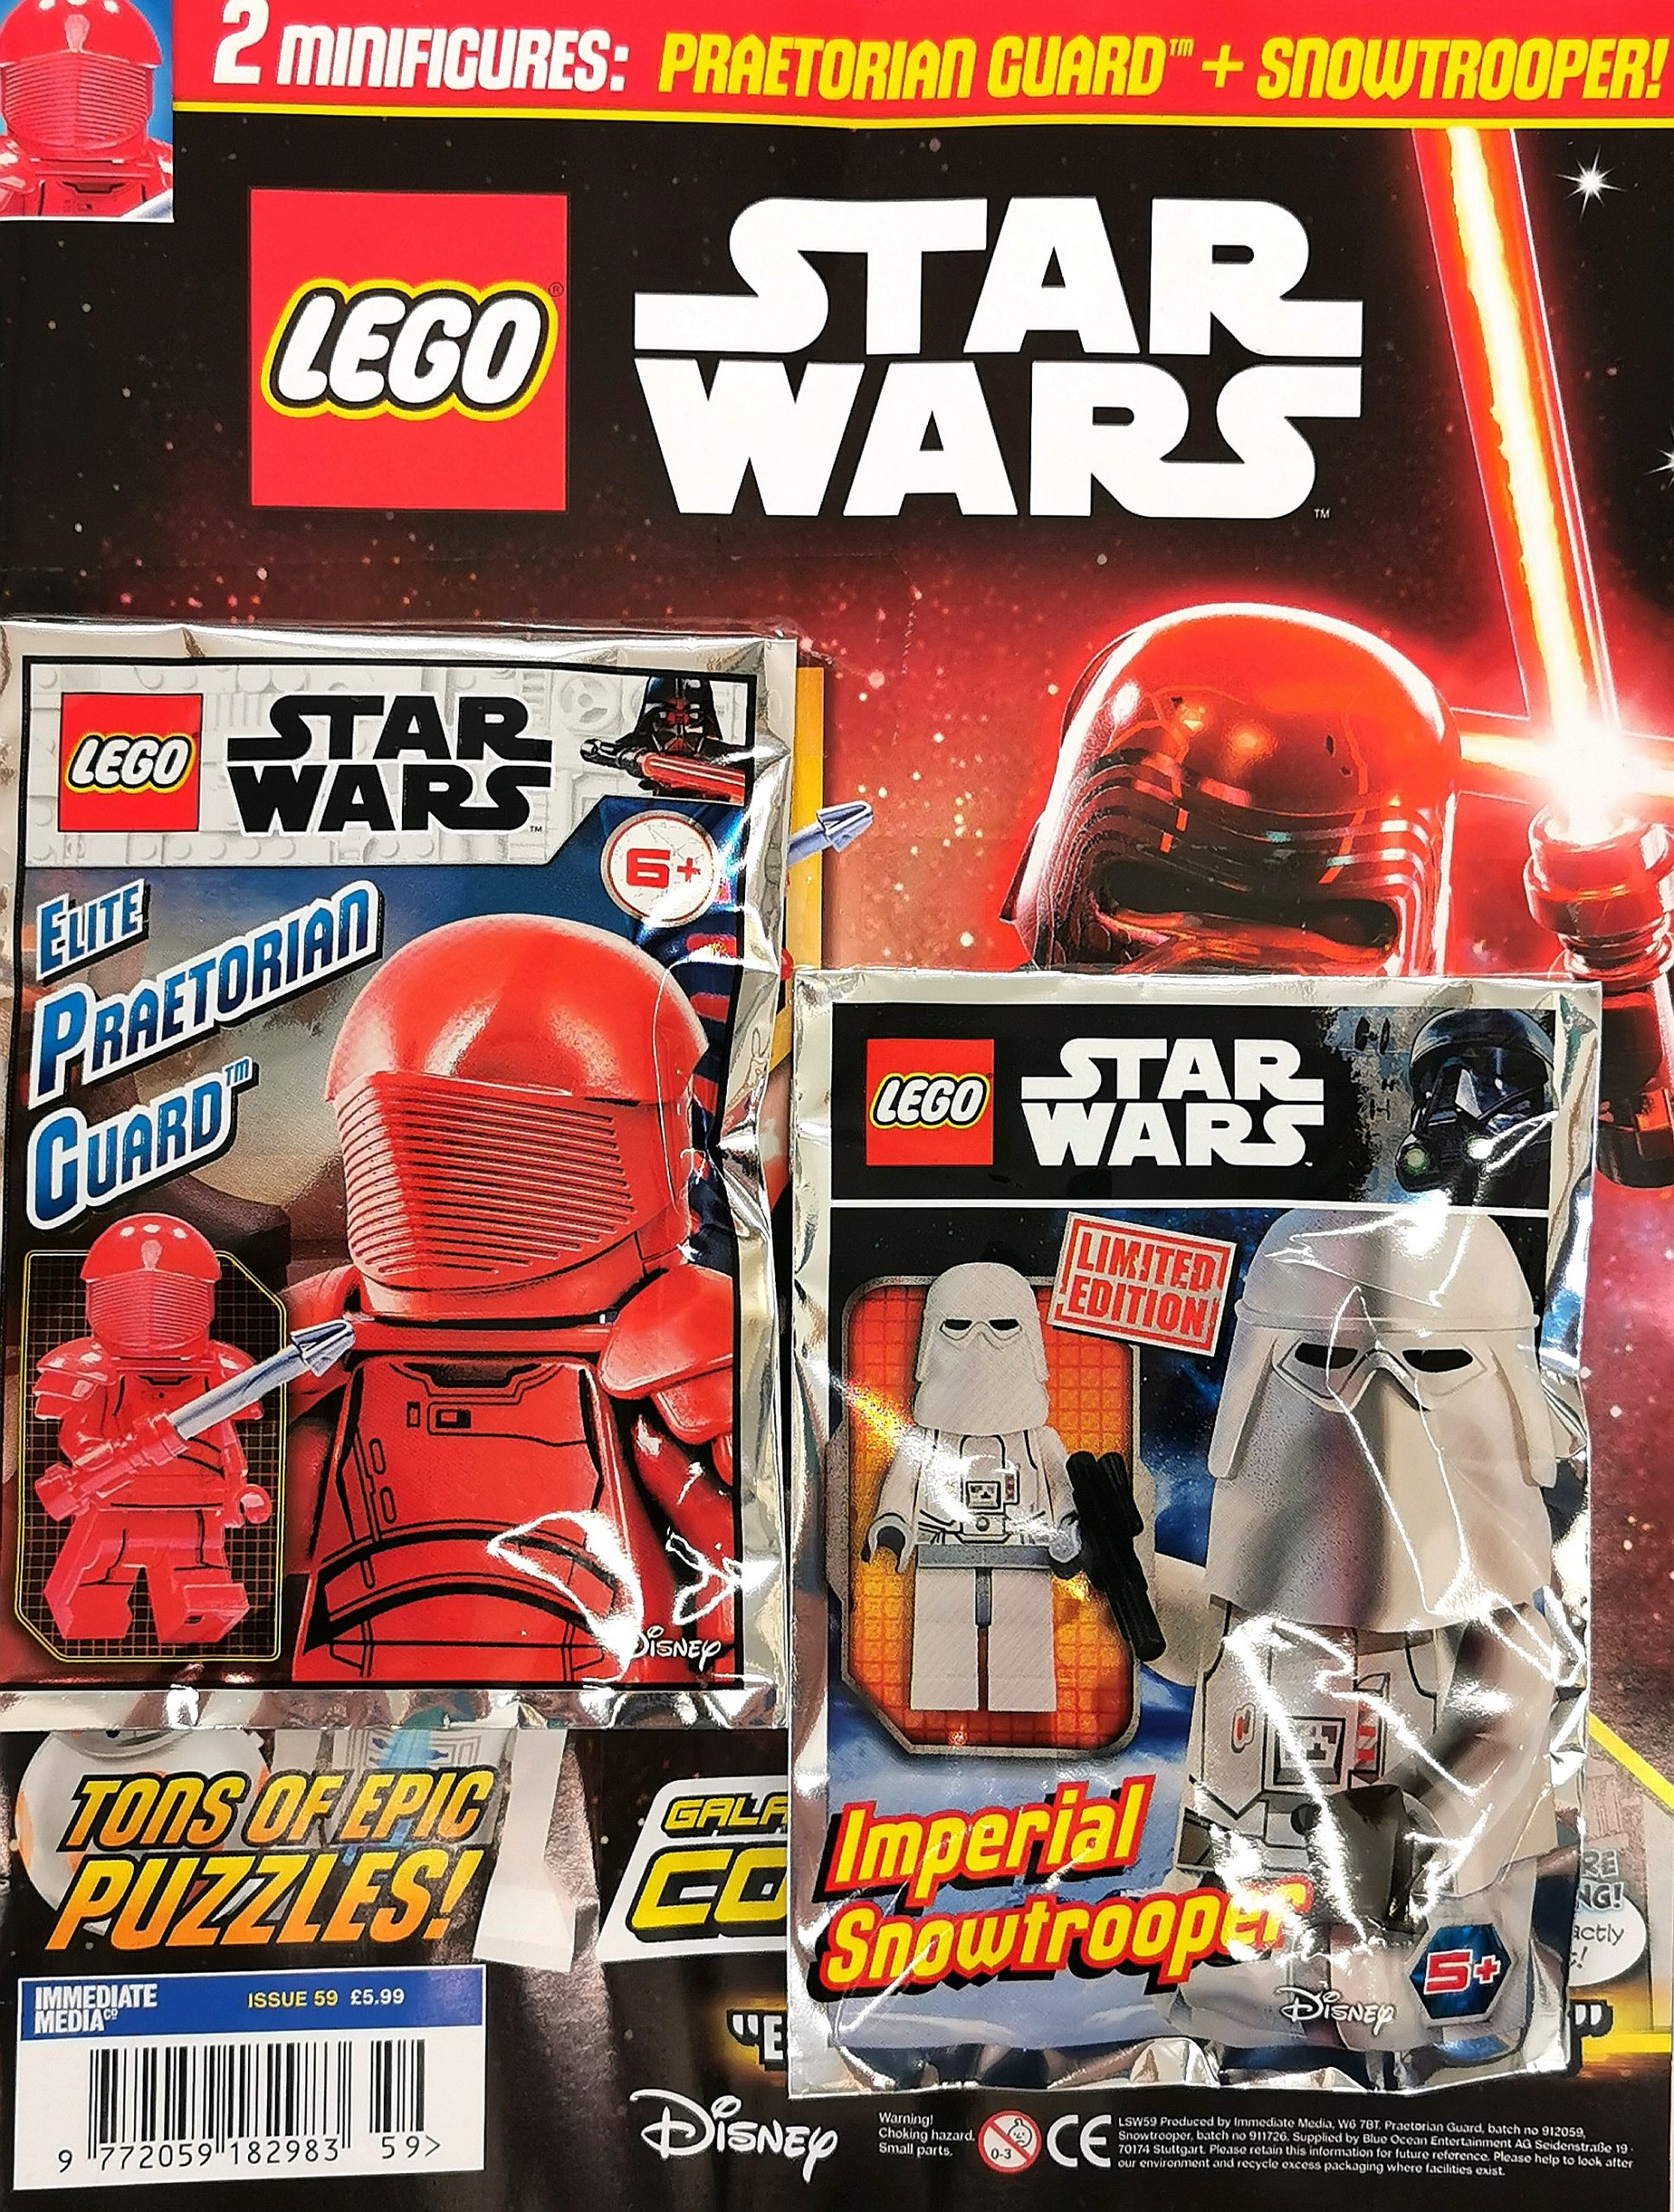 Lego Star Wars Magazine Issue 59 Includes Two Minifigures The Brick Post